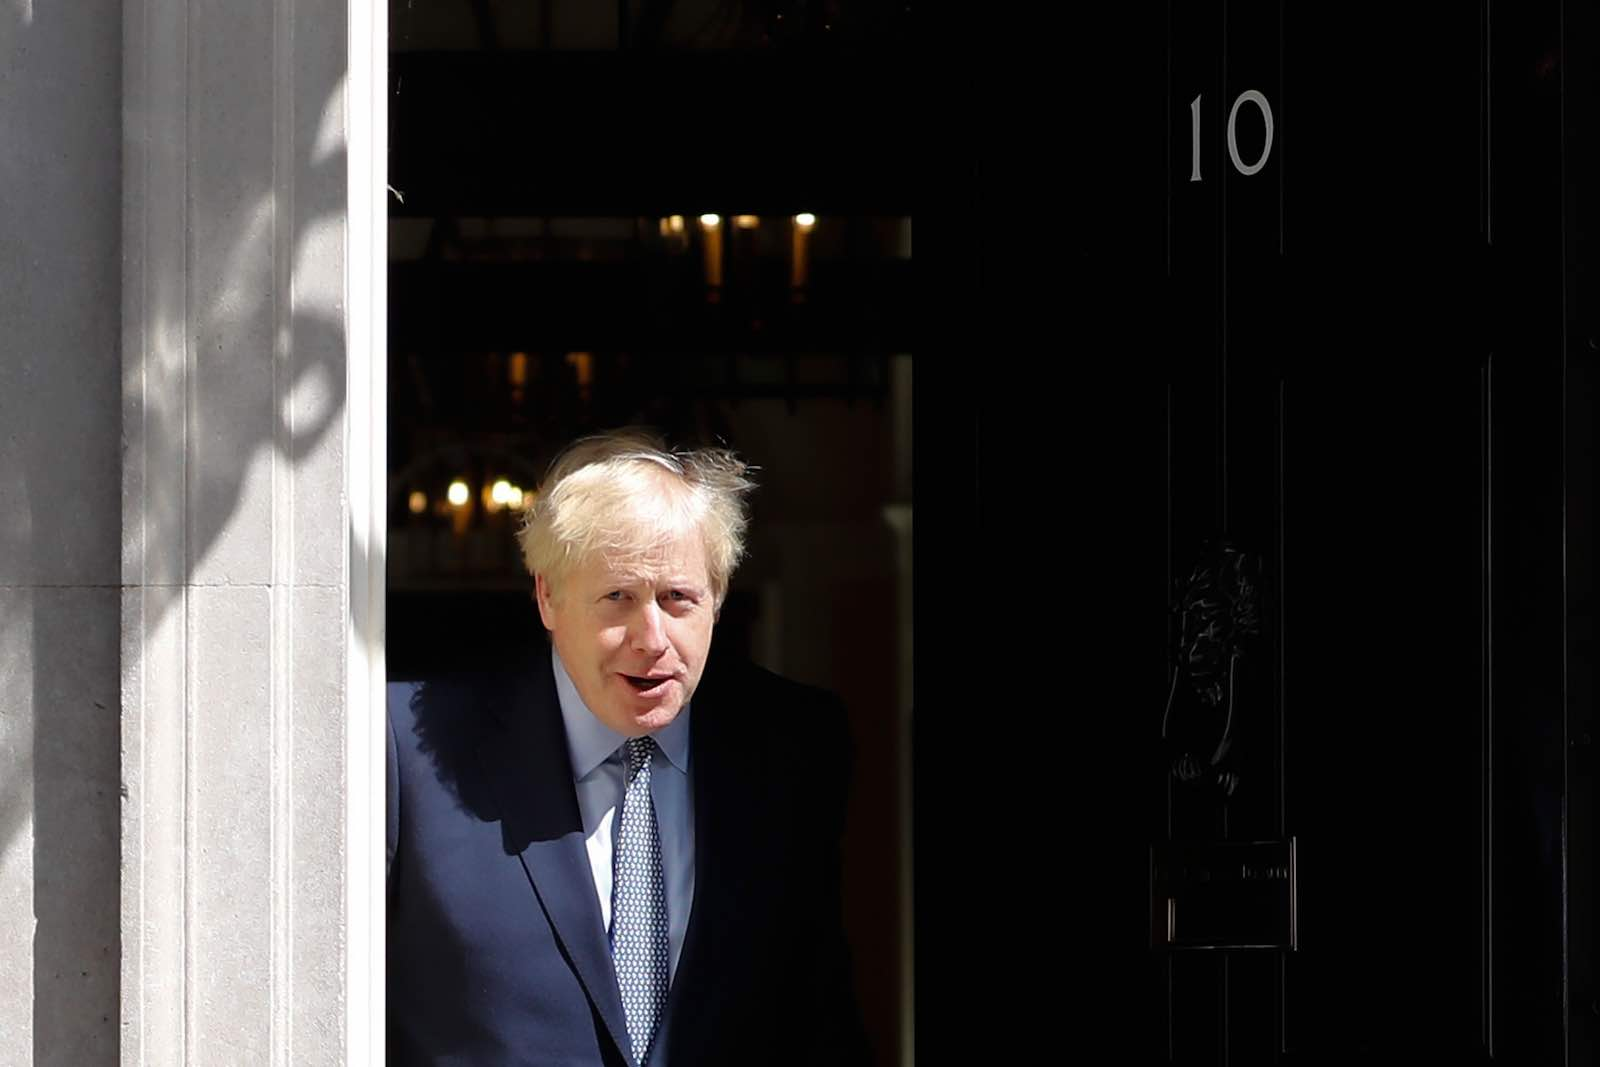 Do or die might not be the slogan Boris Johnson hoped to be remembered for (Photo: Tolga Akmen via Getty)